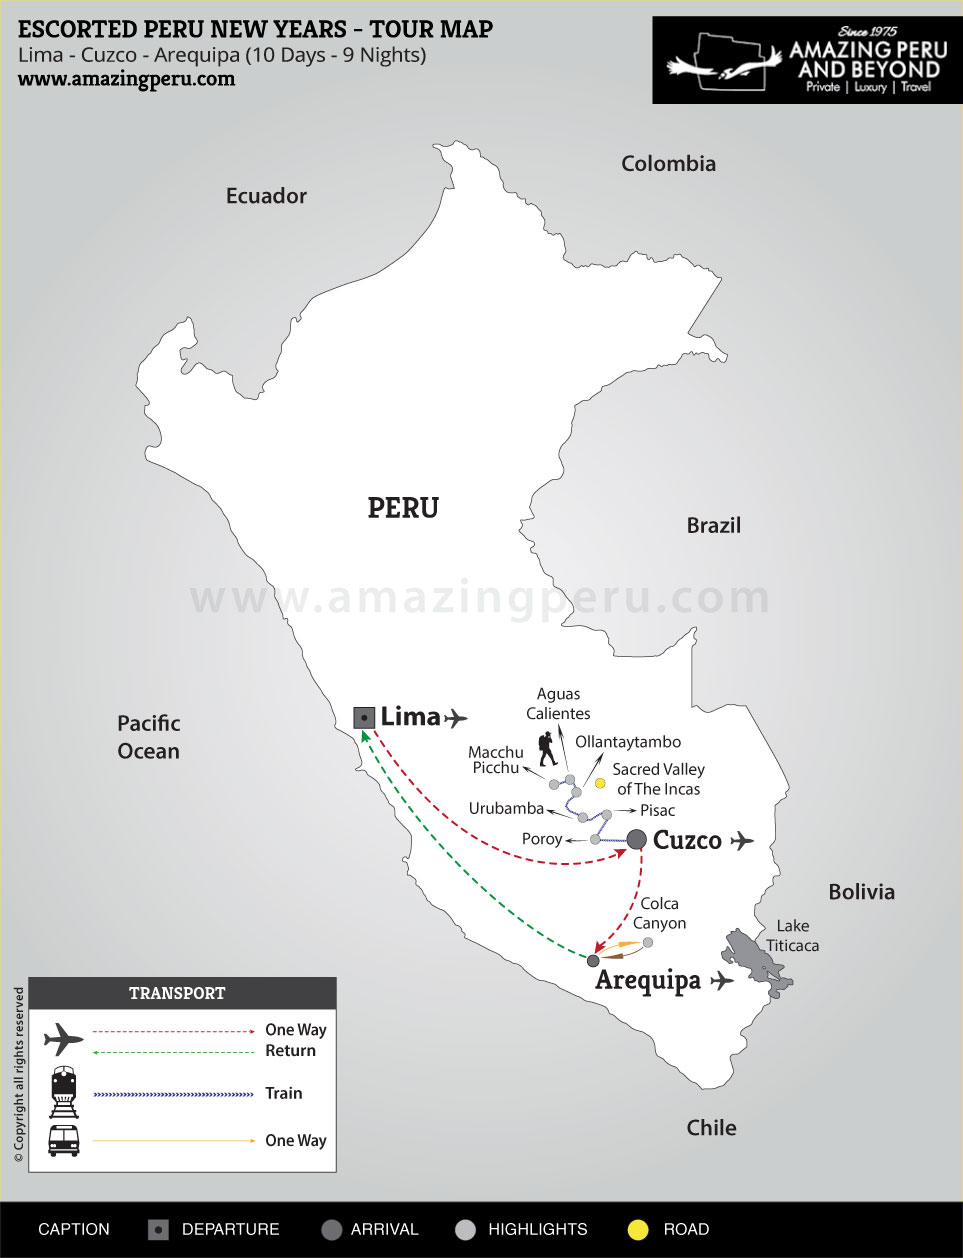 2018-19 Escorted Peru New Years 2 - 10 days / 9 nights.